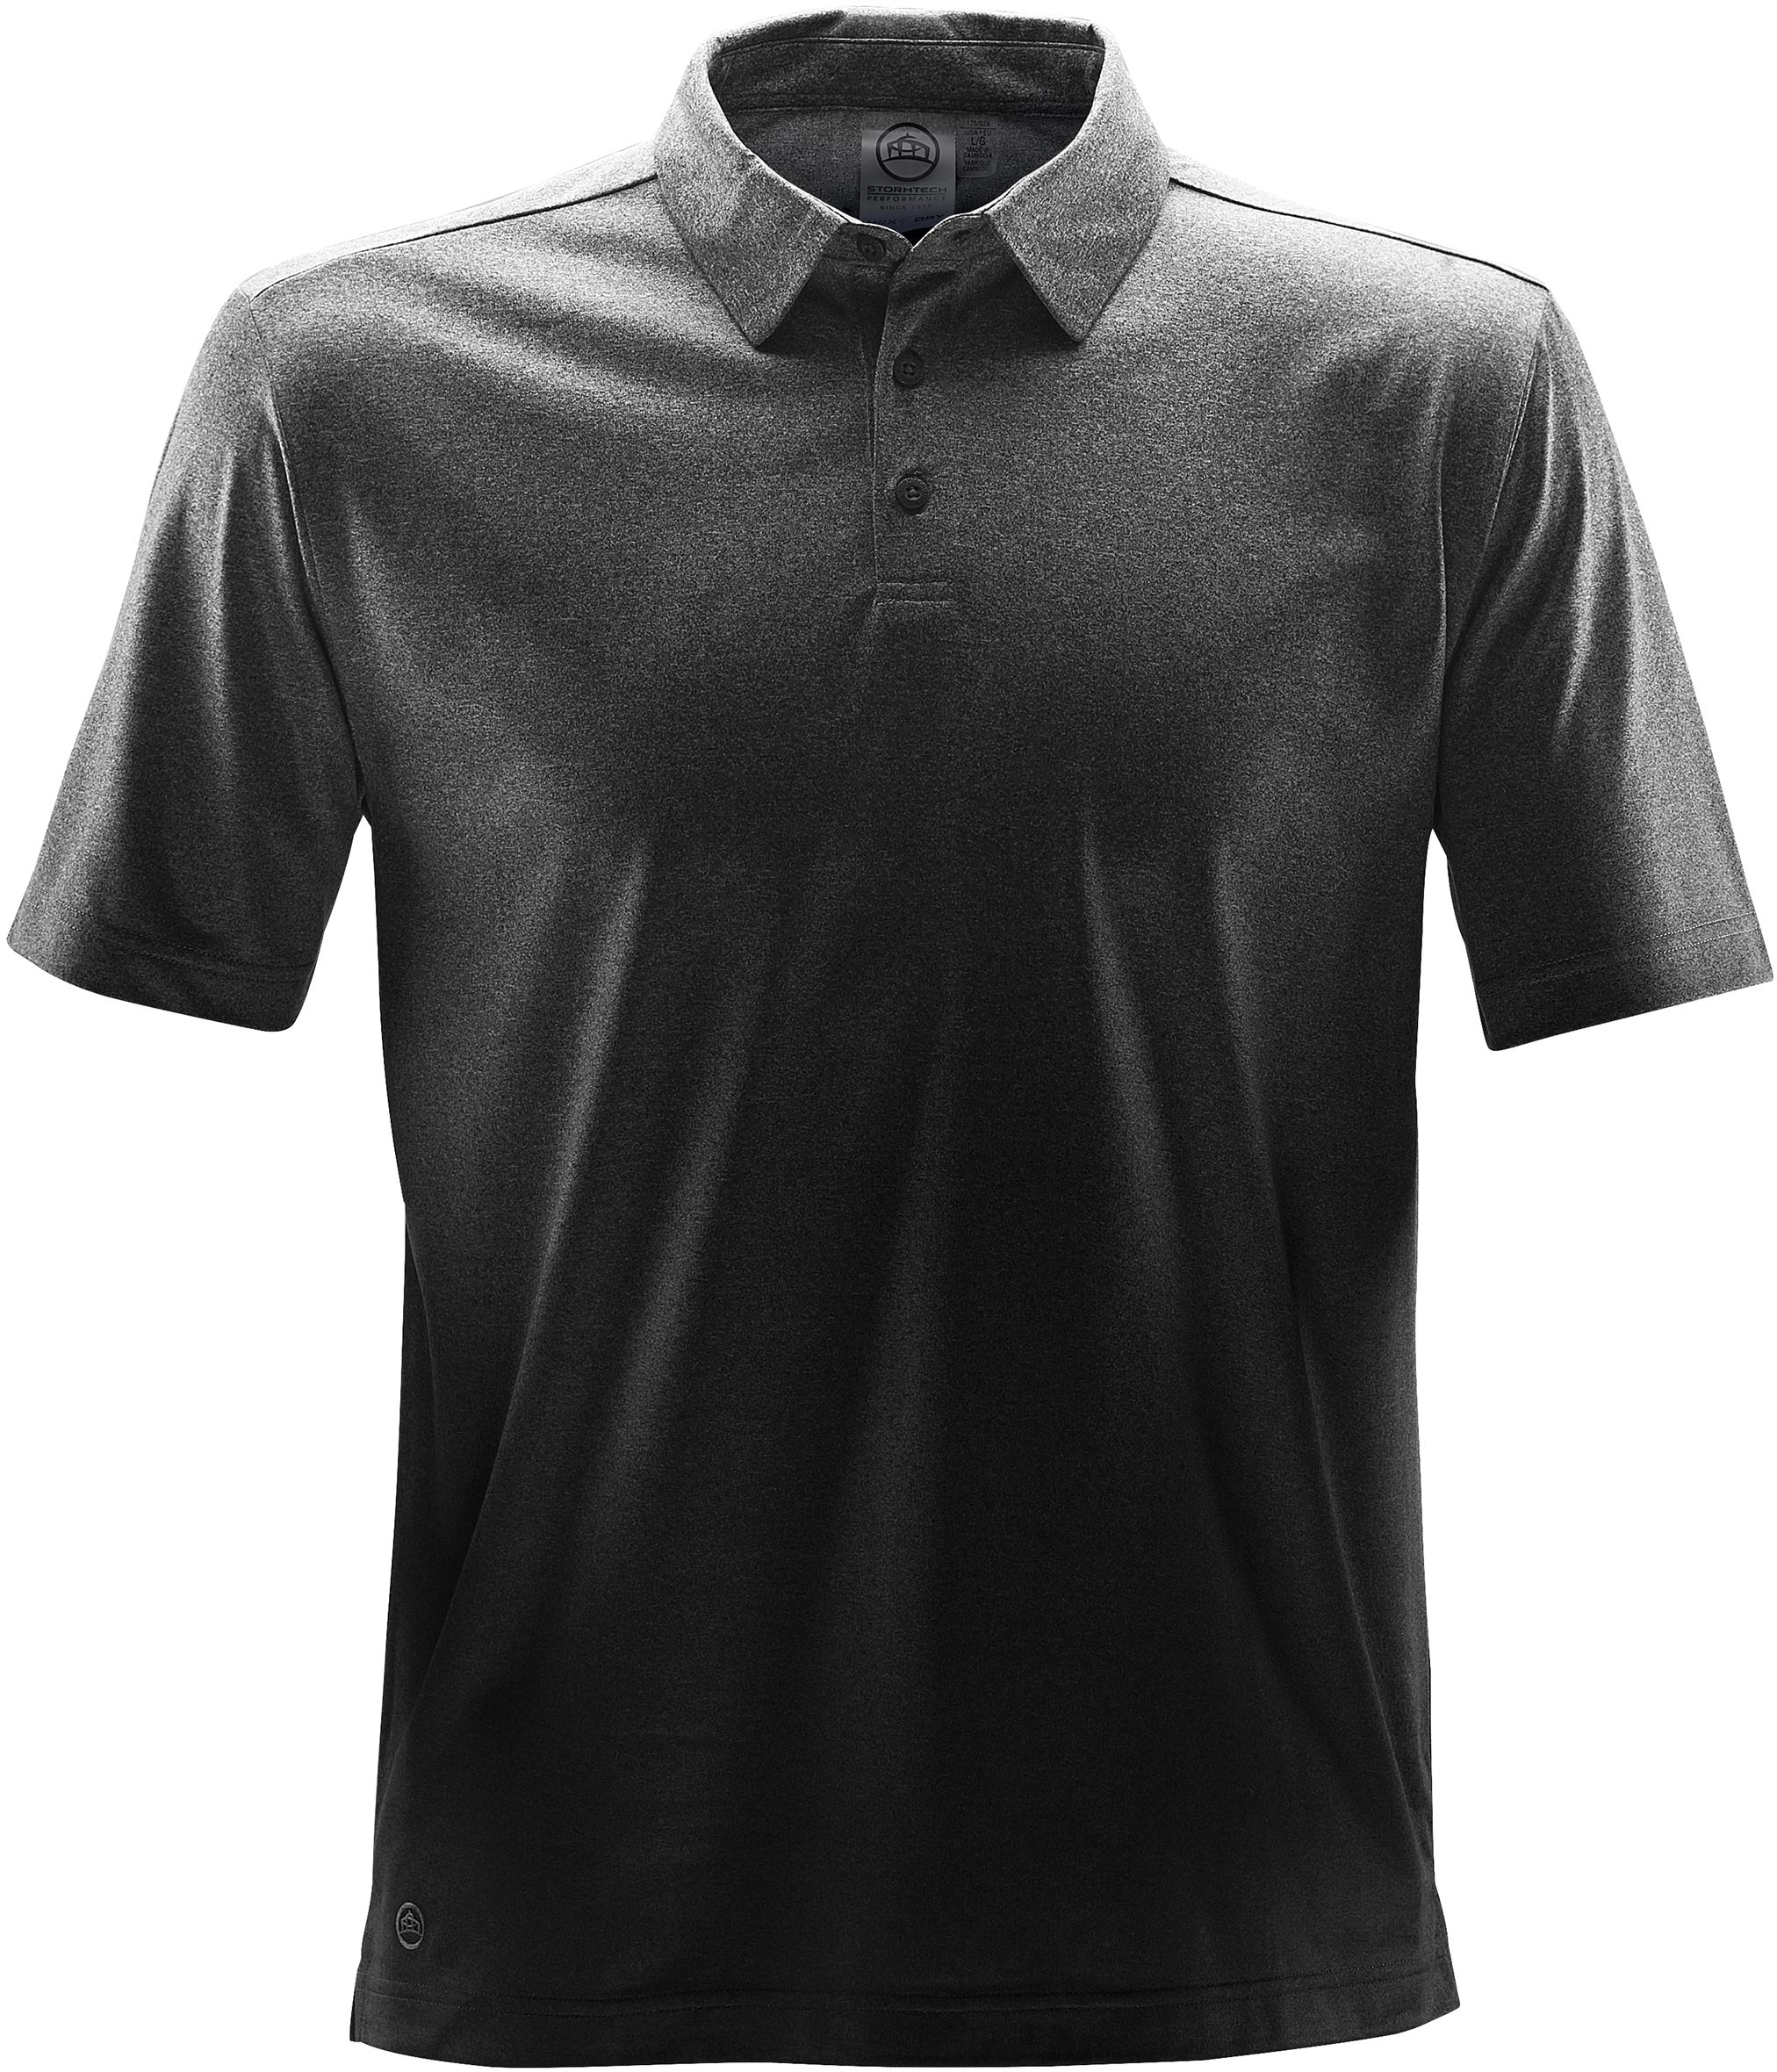 Stormtech TXR-1 - Men's Mirage Polo